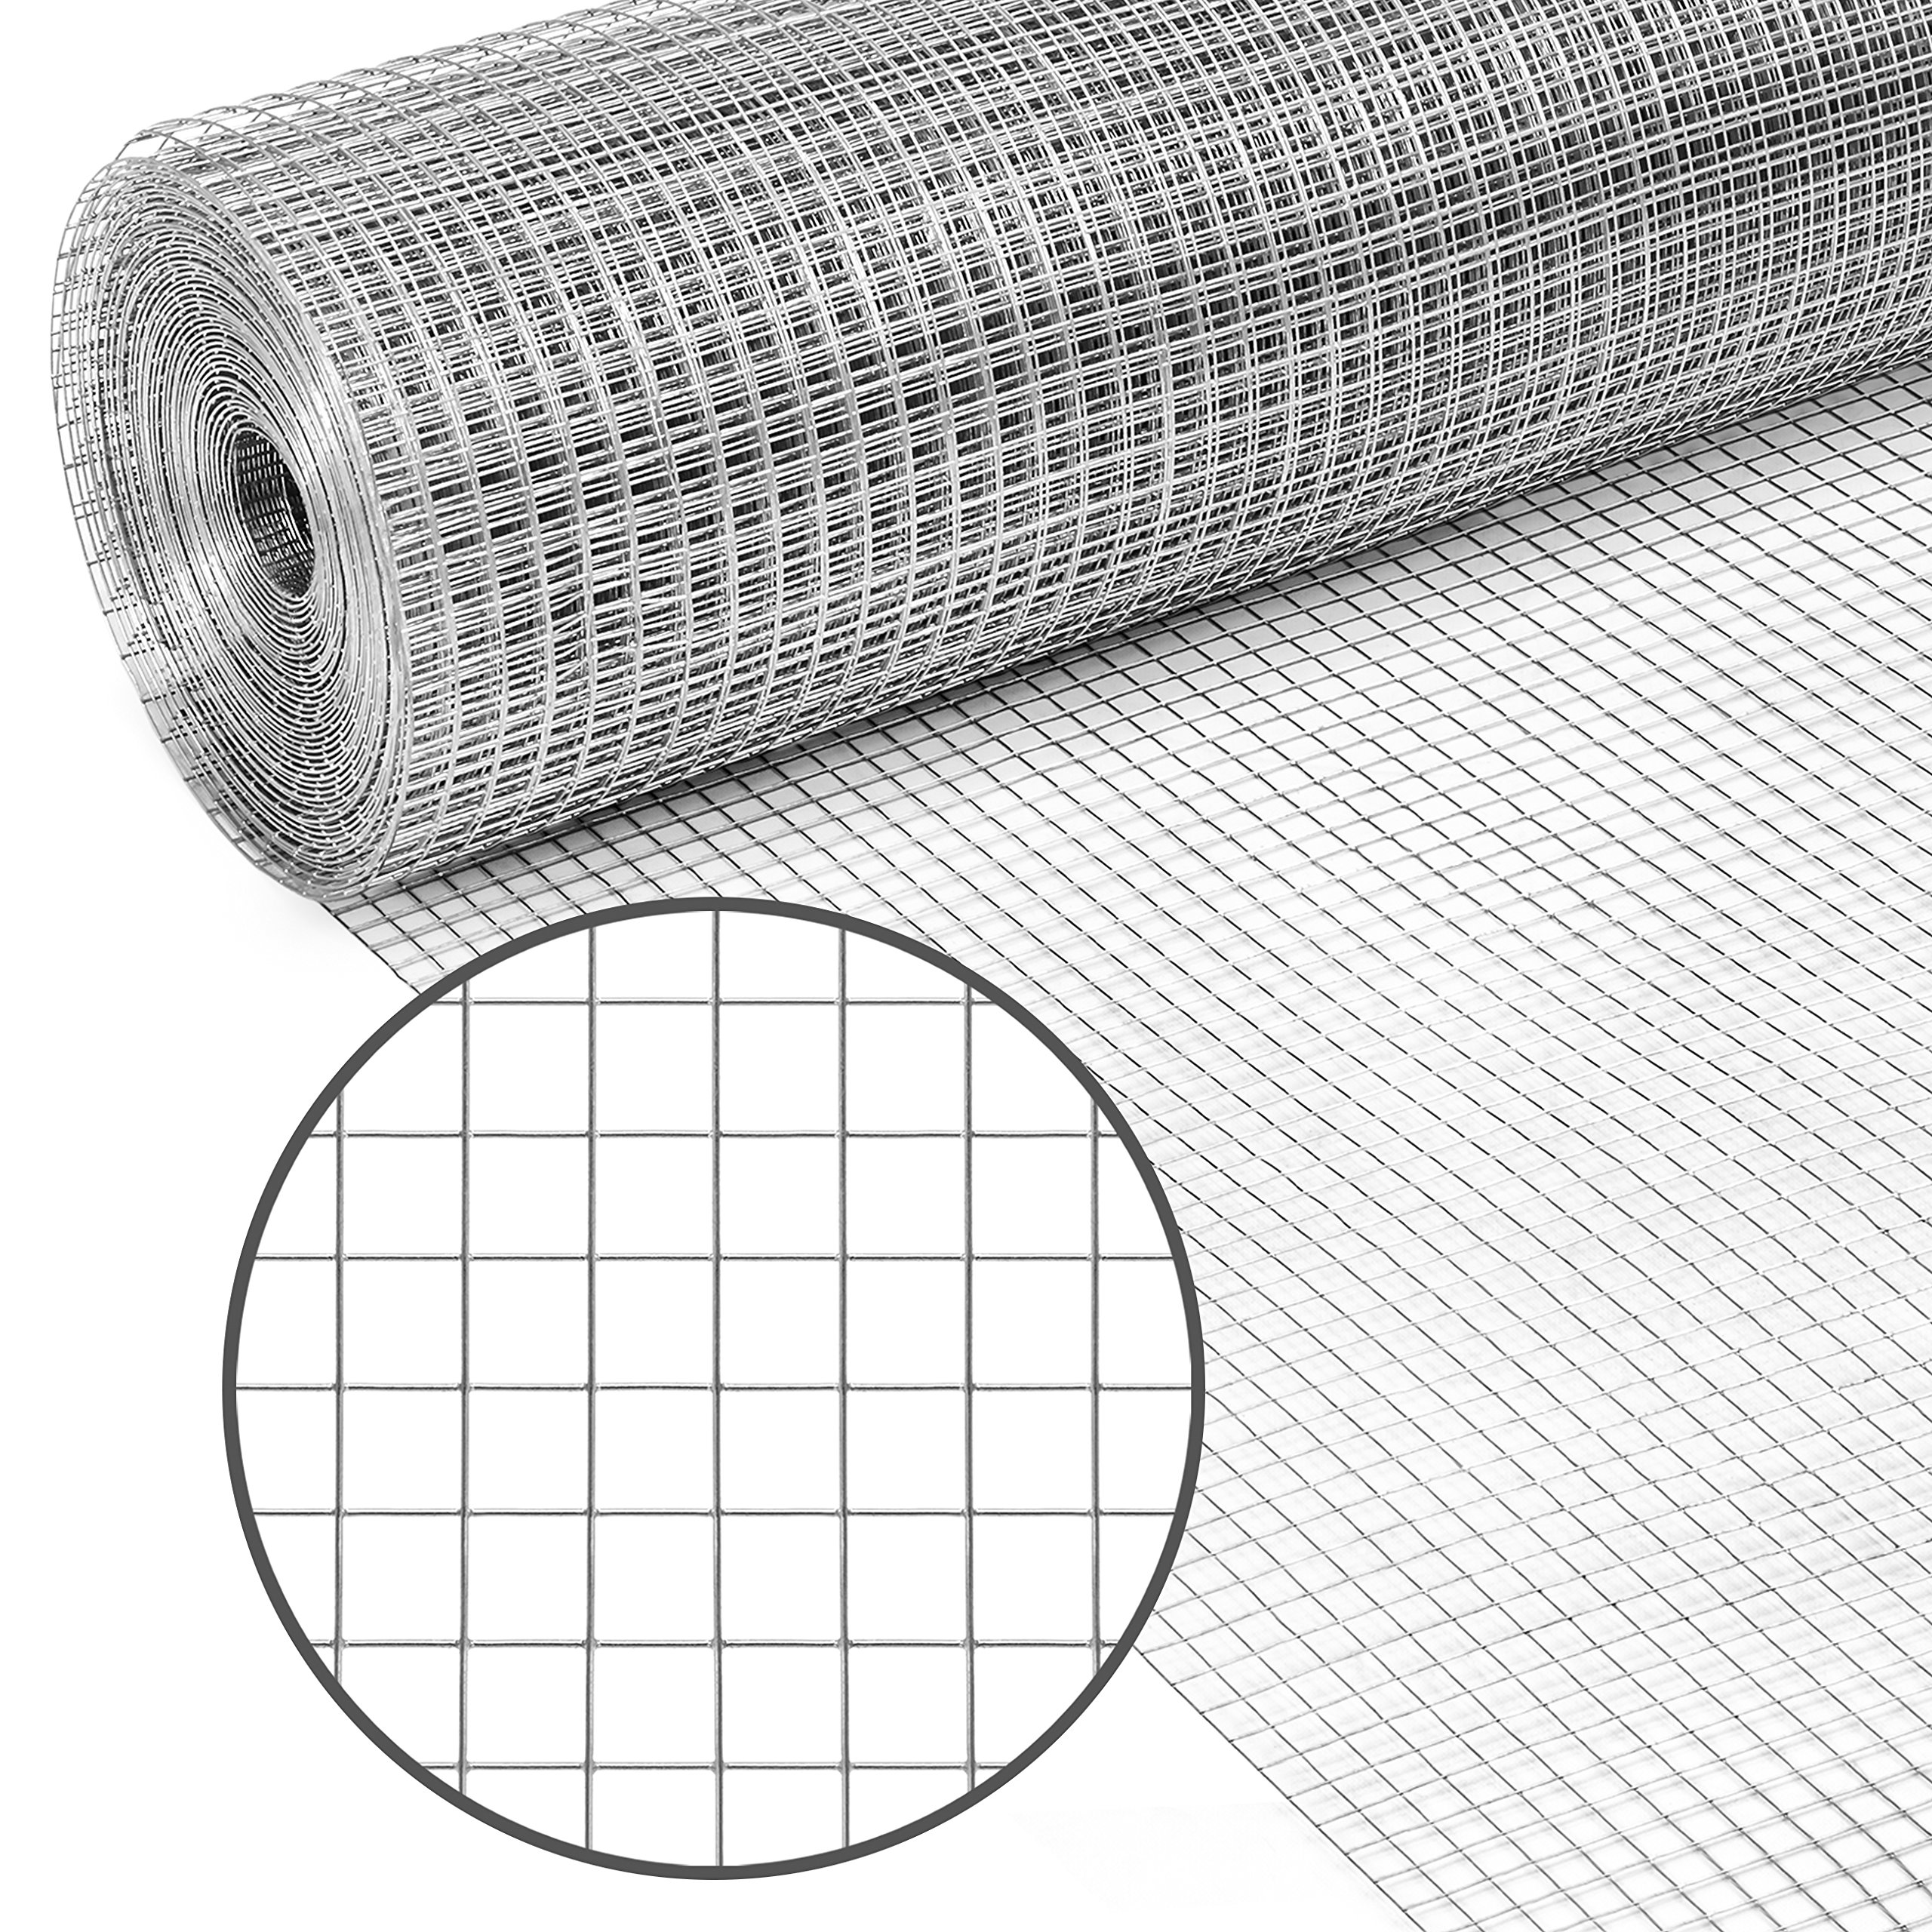 Best Choice Products 3x50ft Multipurpose 19-Gauge Double-Zinc Galvanized Welded Chicken Cage Wire Mesh Fence Netting Hardware Cloth for Poultry Coop, Animal, Garden Protection w/ 1.5in Openings